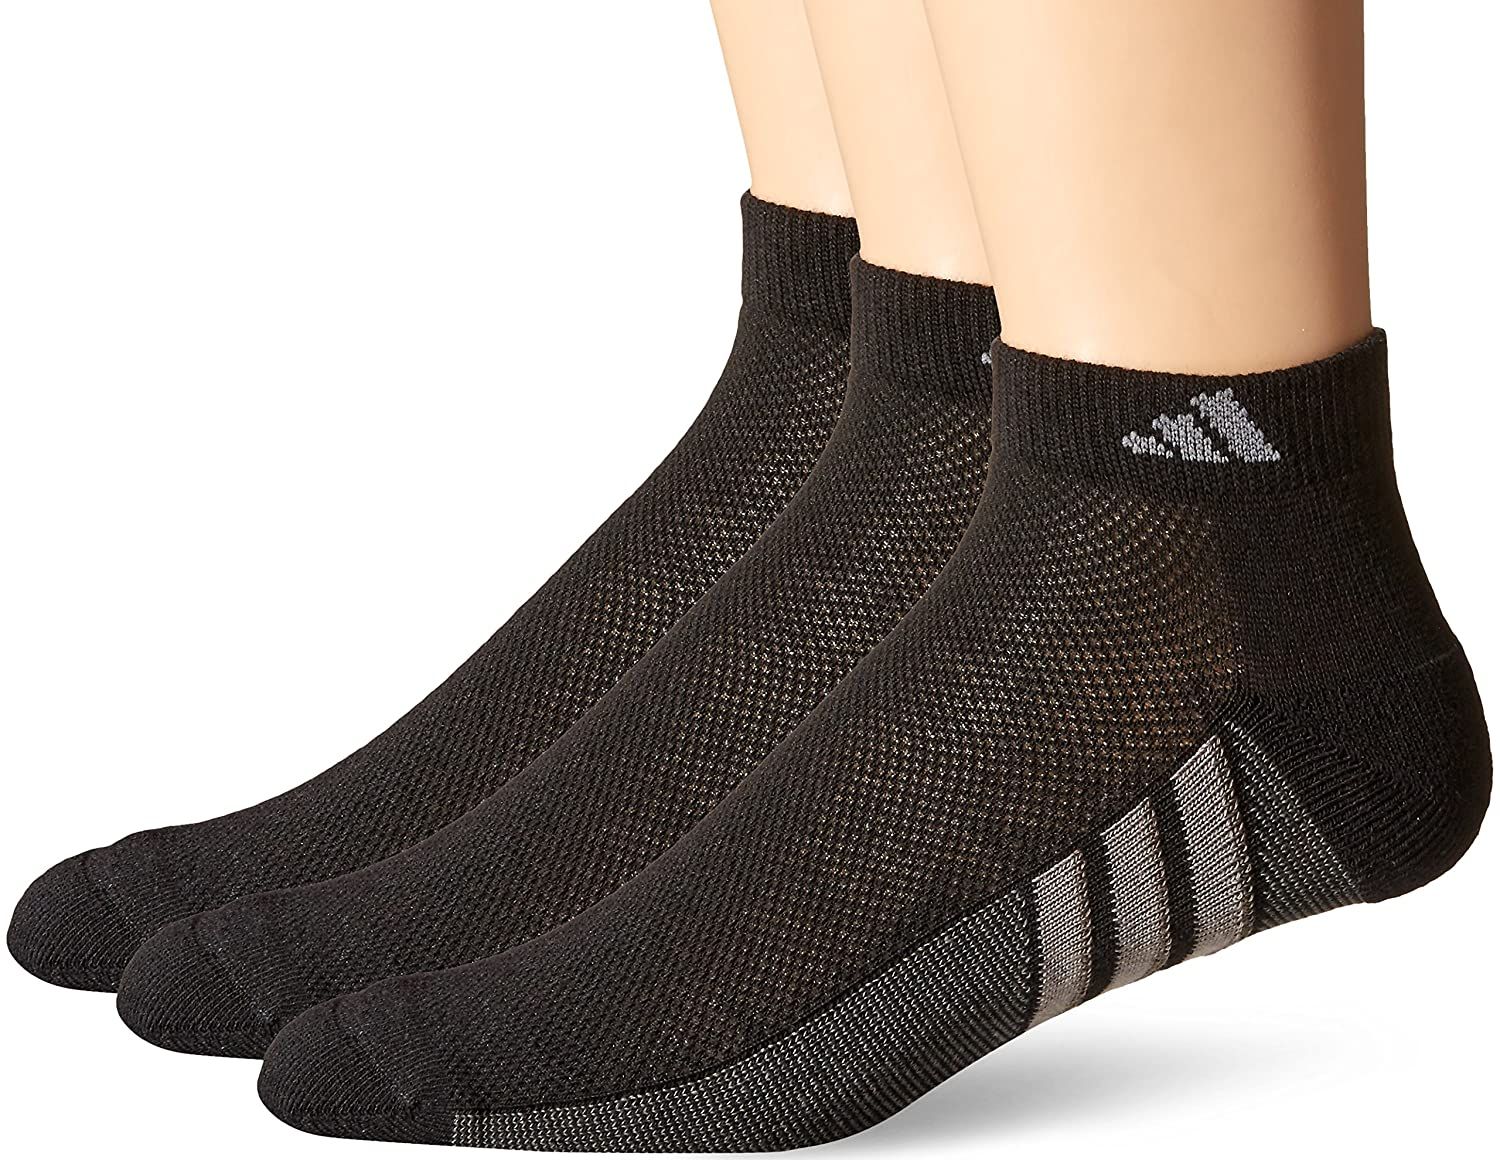 adidas Unisex Climacool Superlite Low Cut Socks (Pack of 3) 5135942